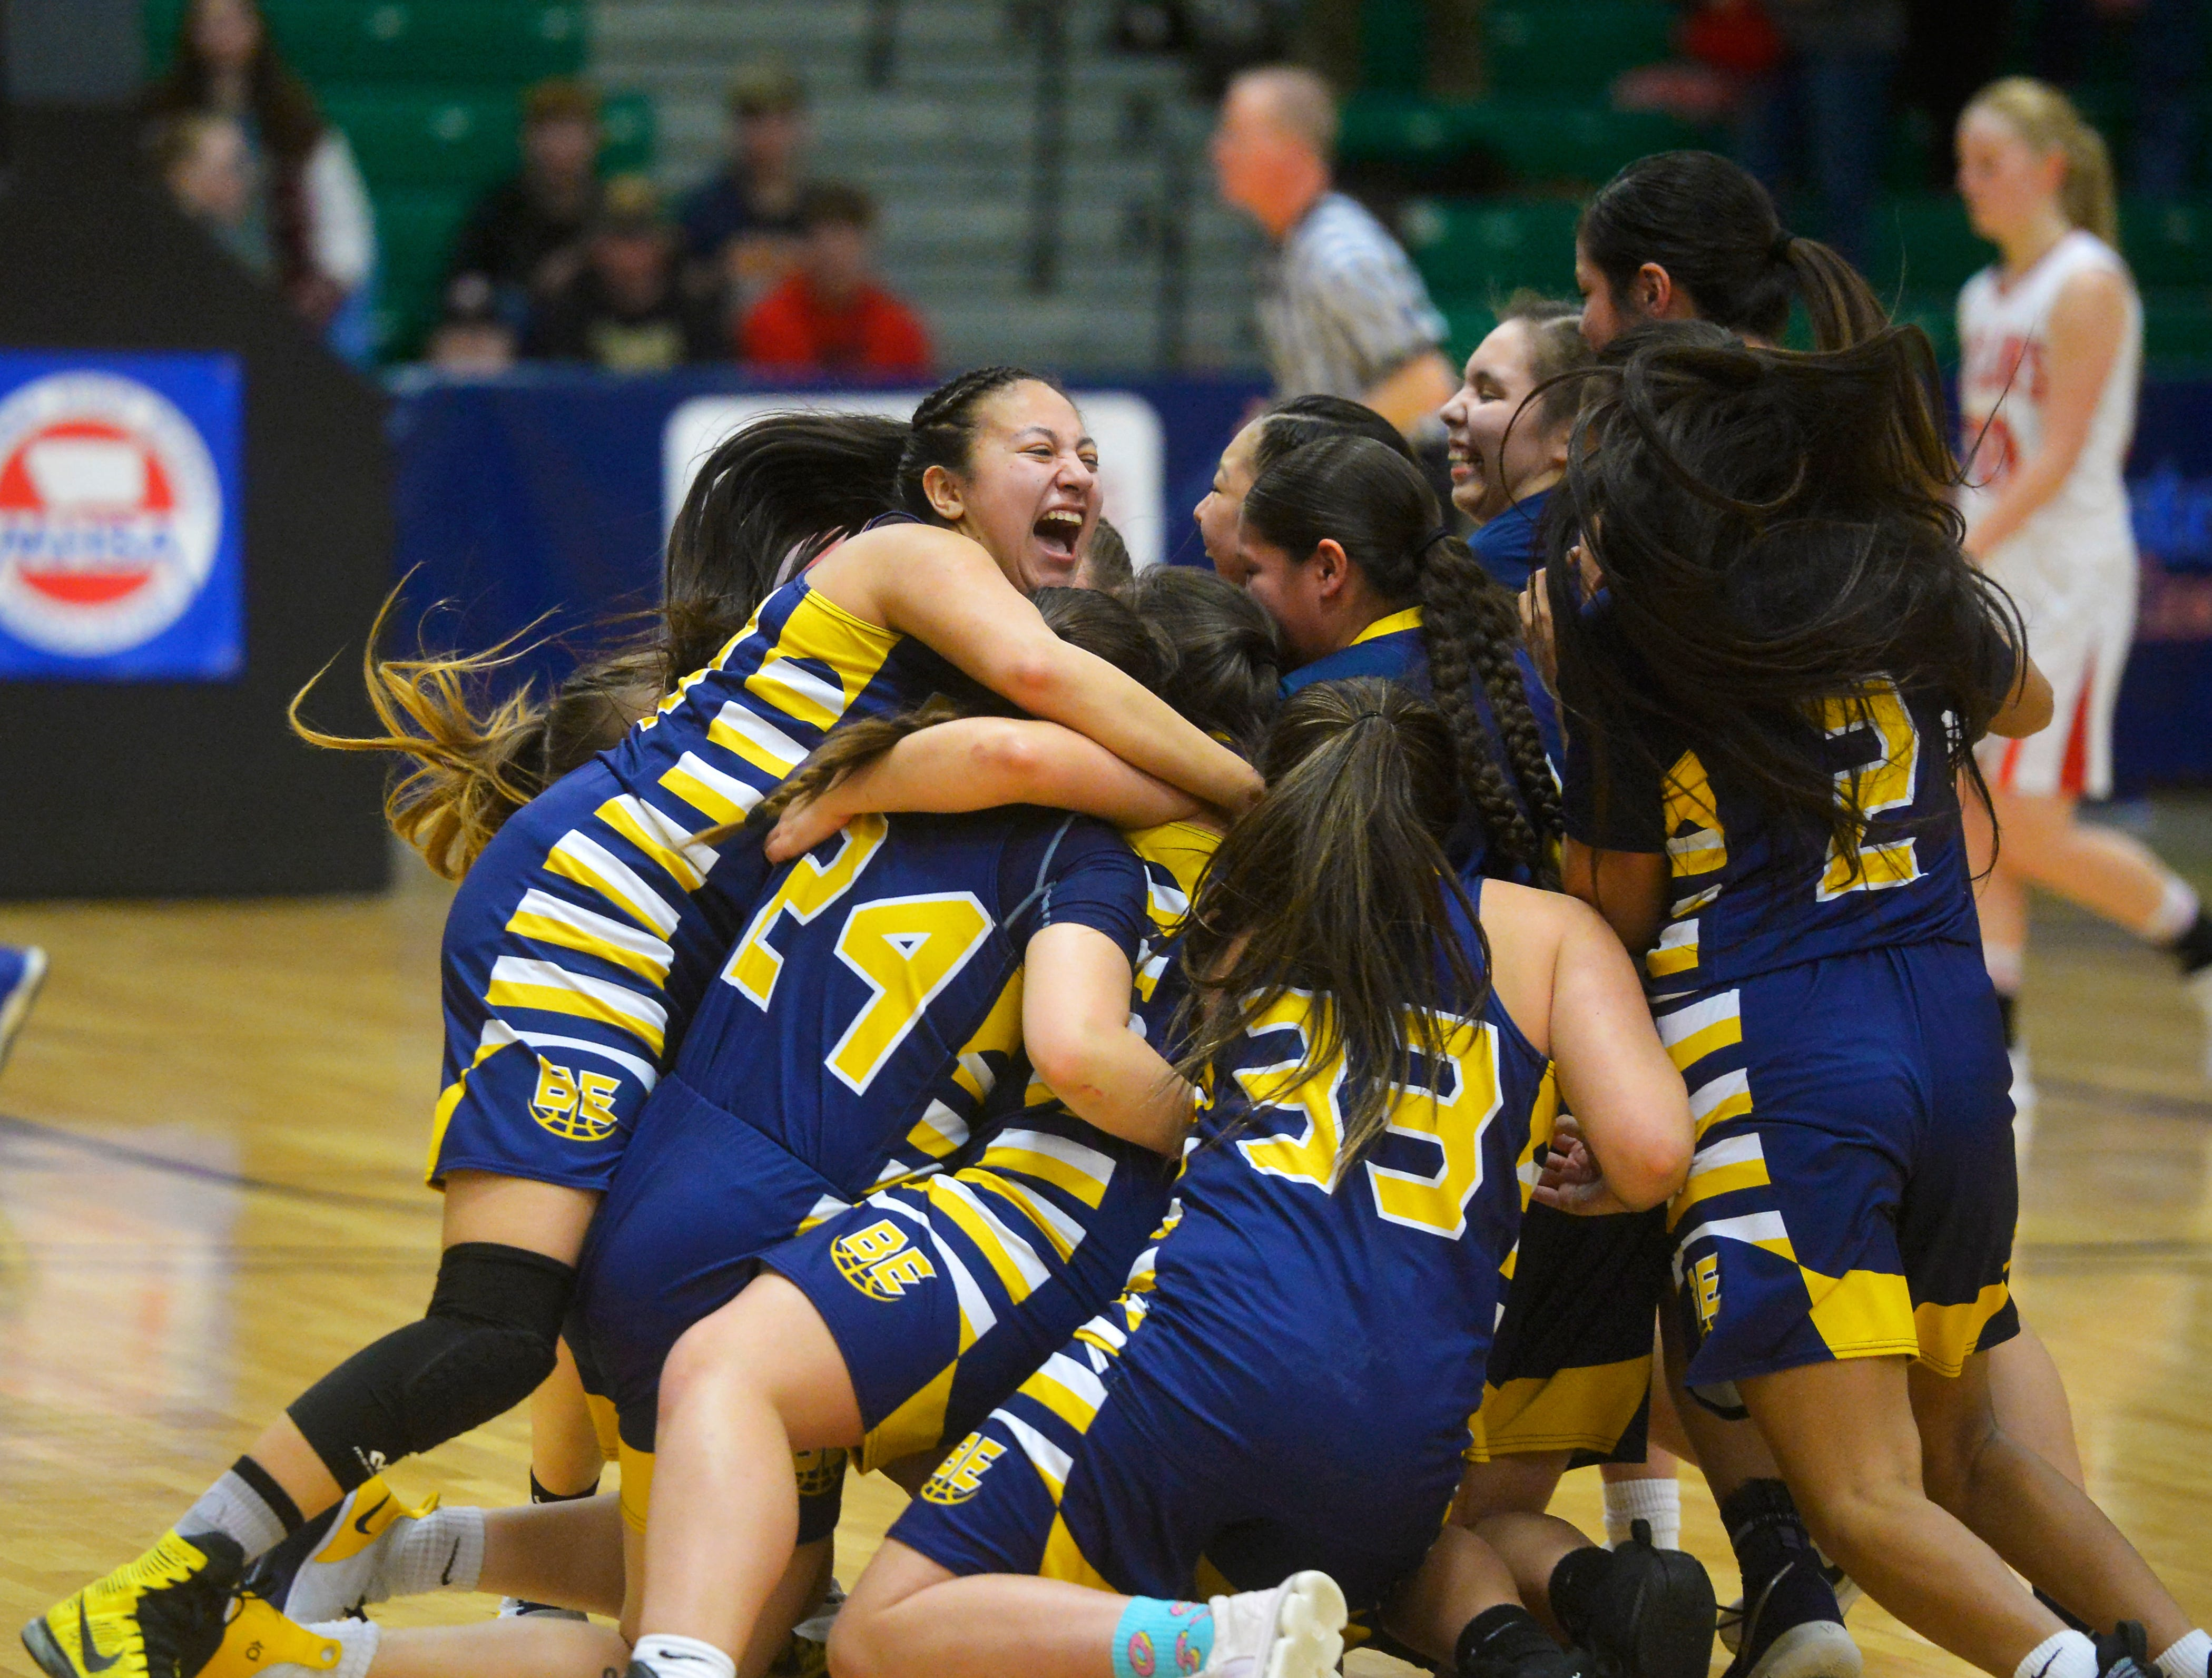 The Box Elder girls celebrate at center court after their 48-42 victory over Roy-Winifred in the Class C state basketball championship game on Saturday night in the Four Seasons Arena.